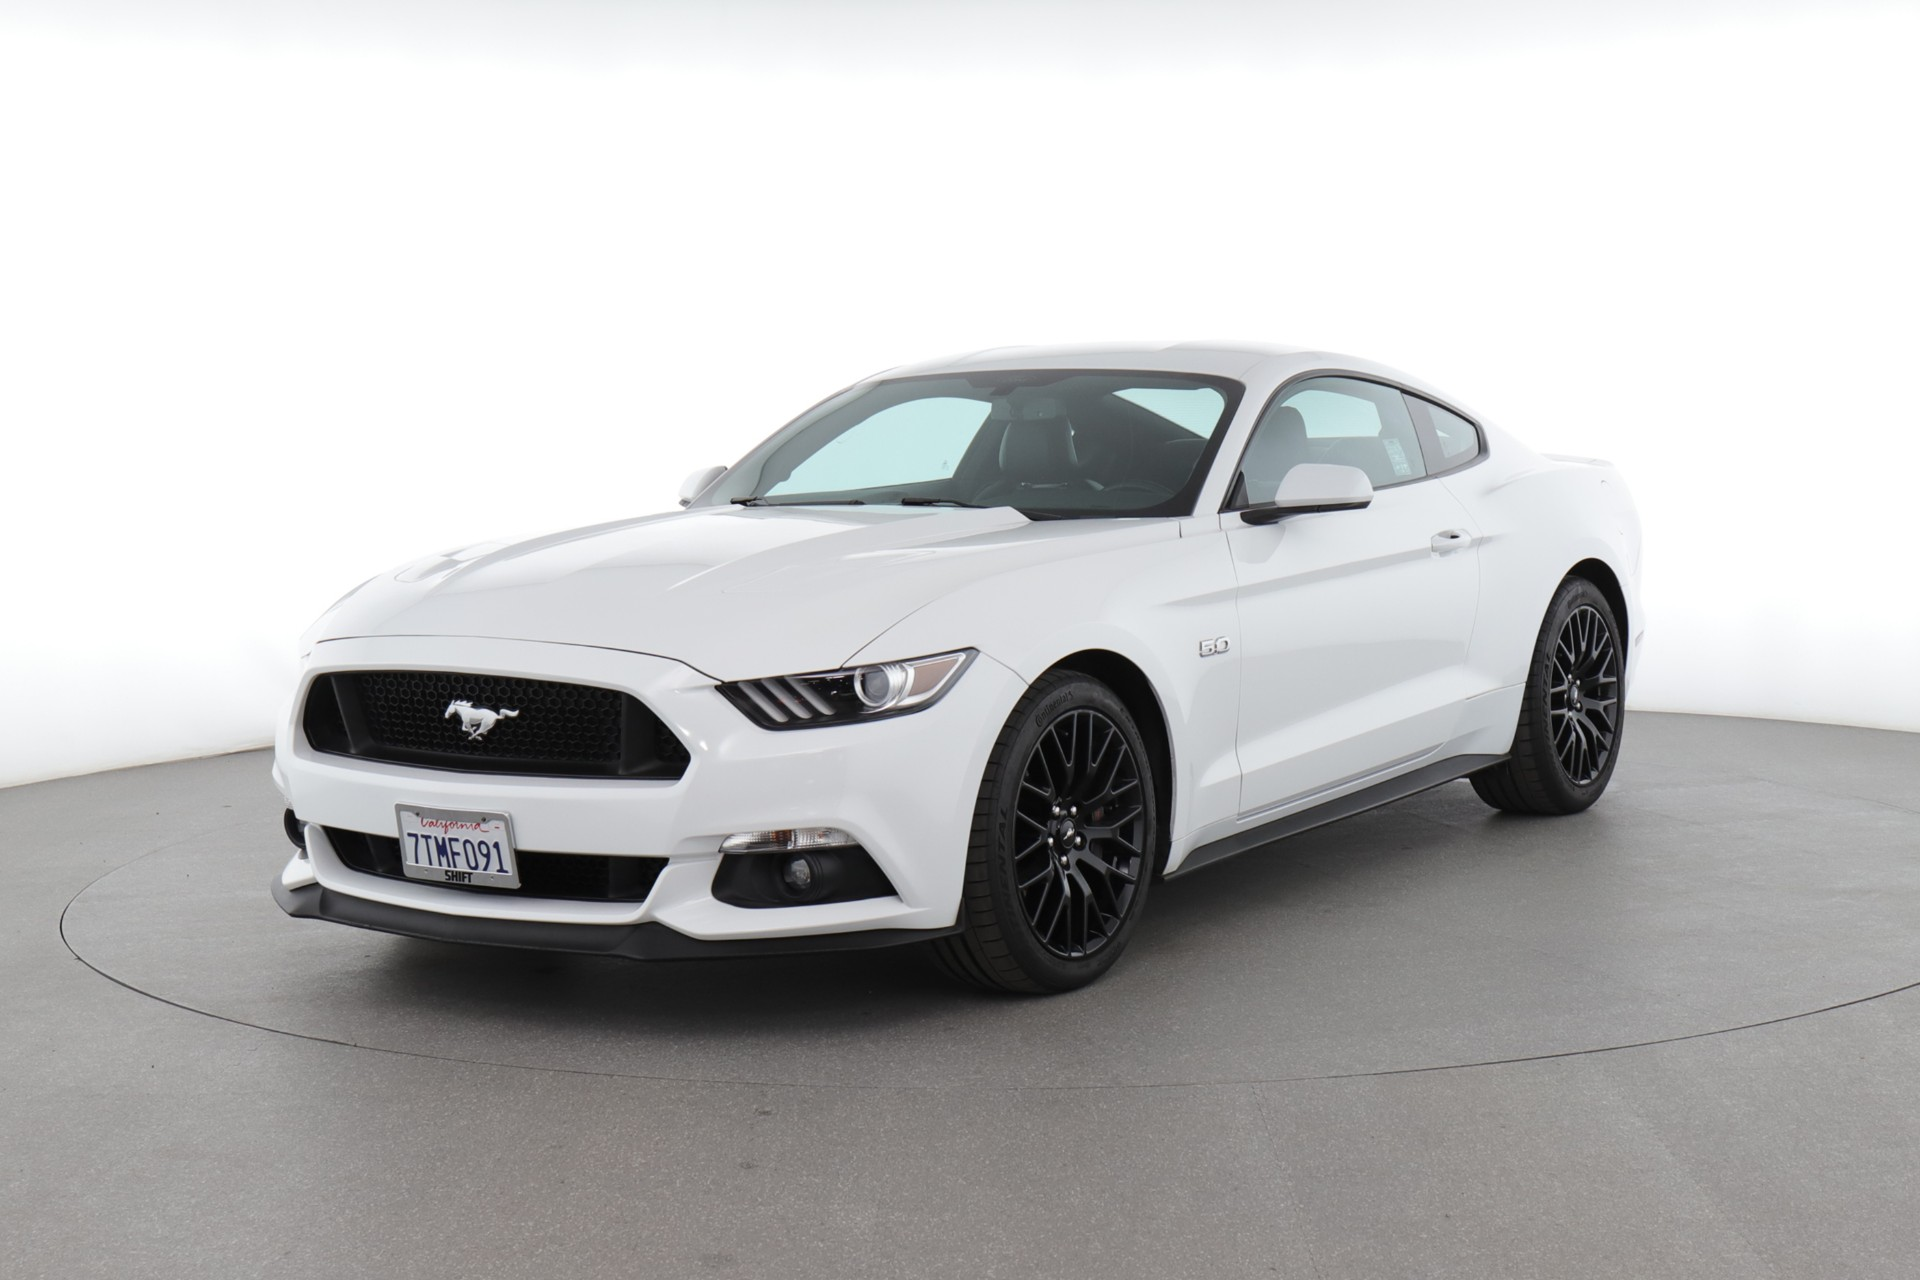 Ford Mustang GT w/ 6-Speed Manual (from $28,850)